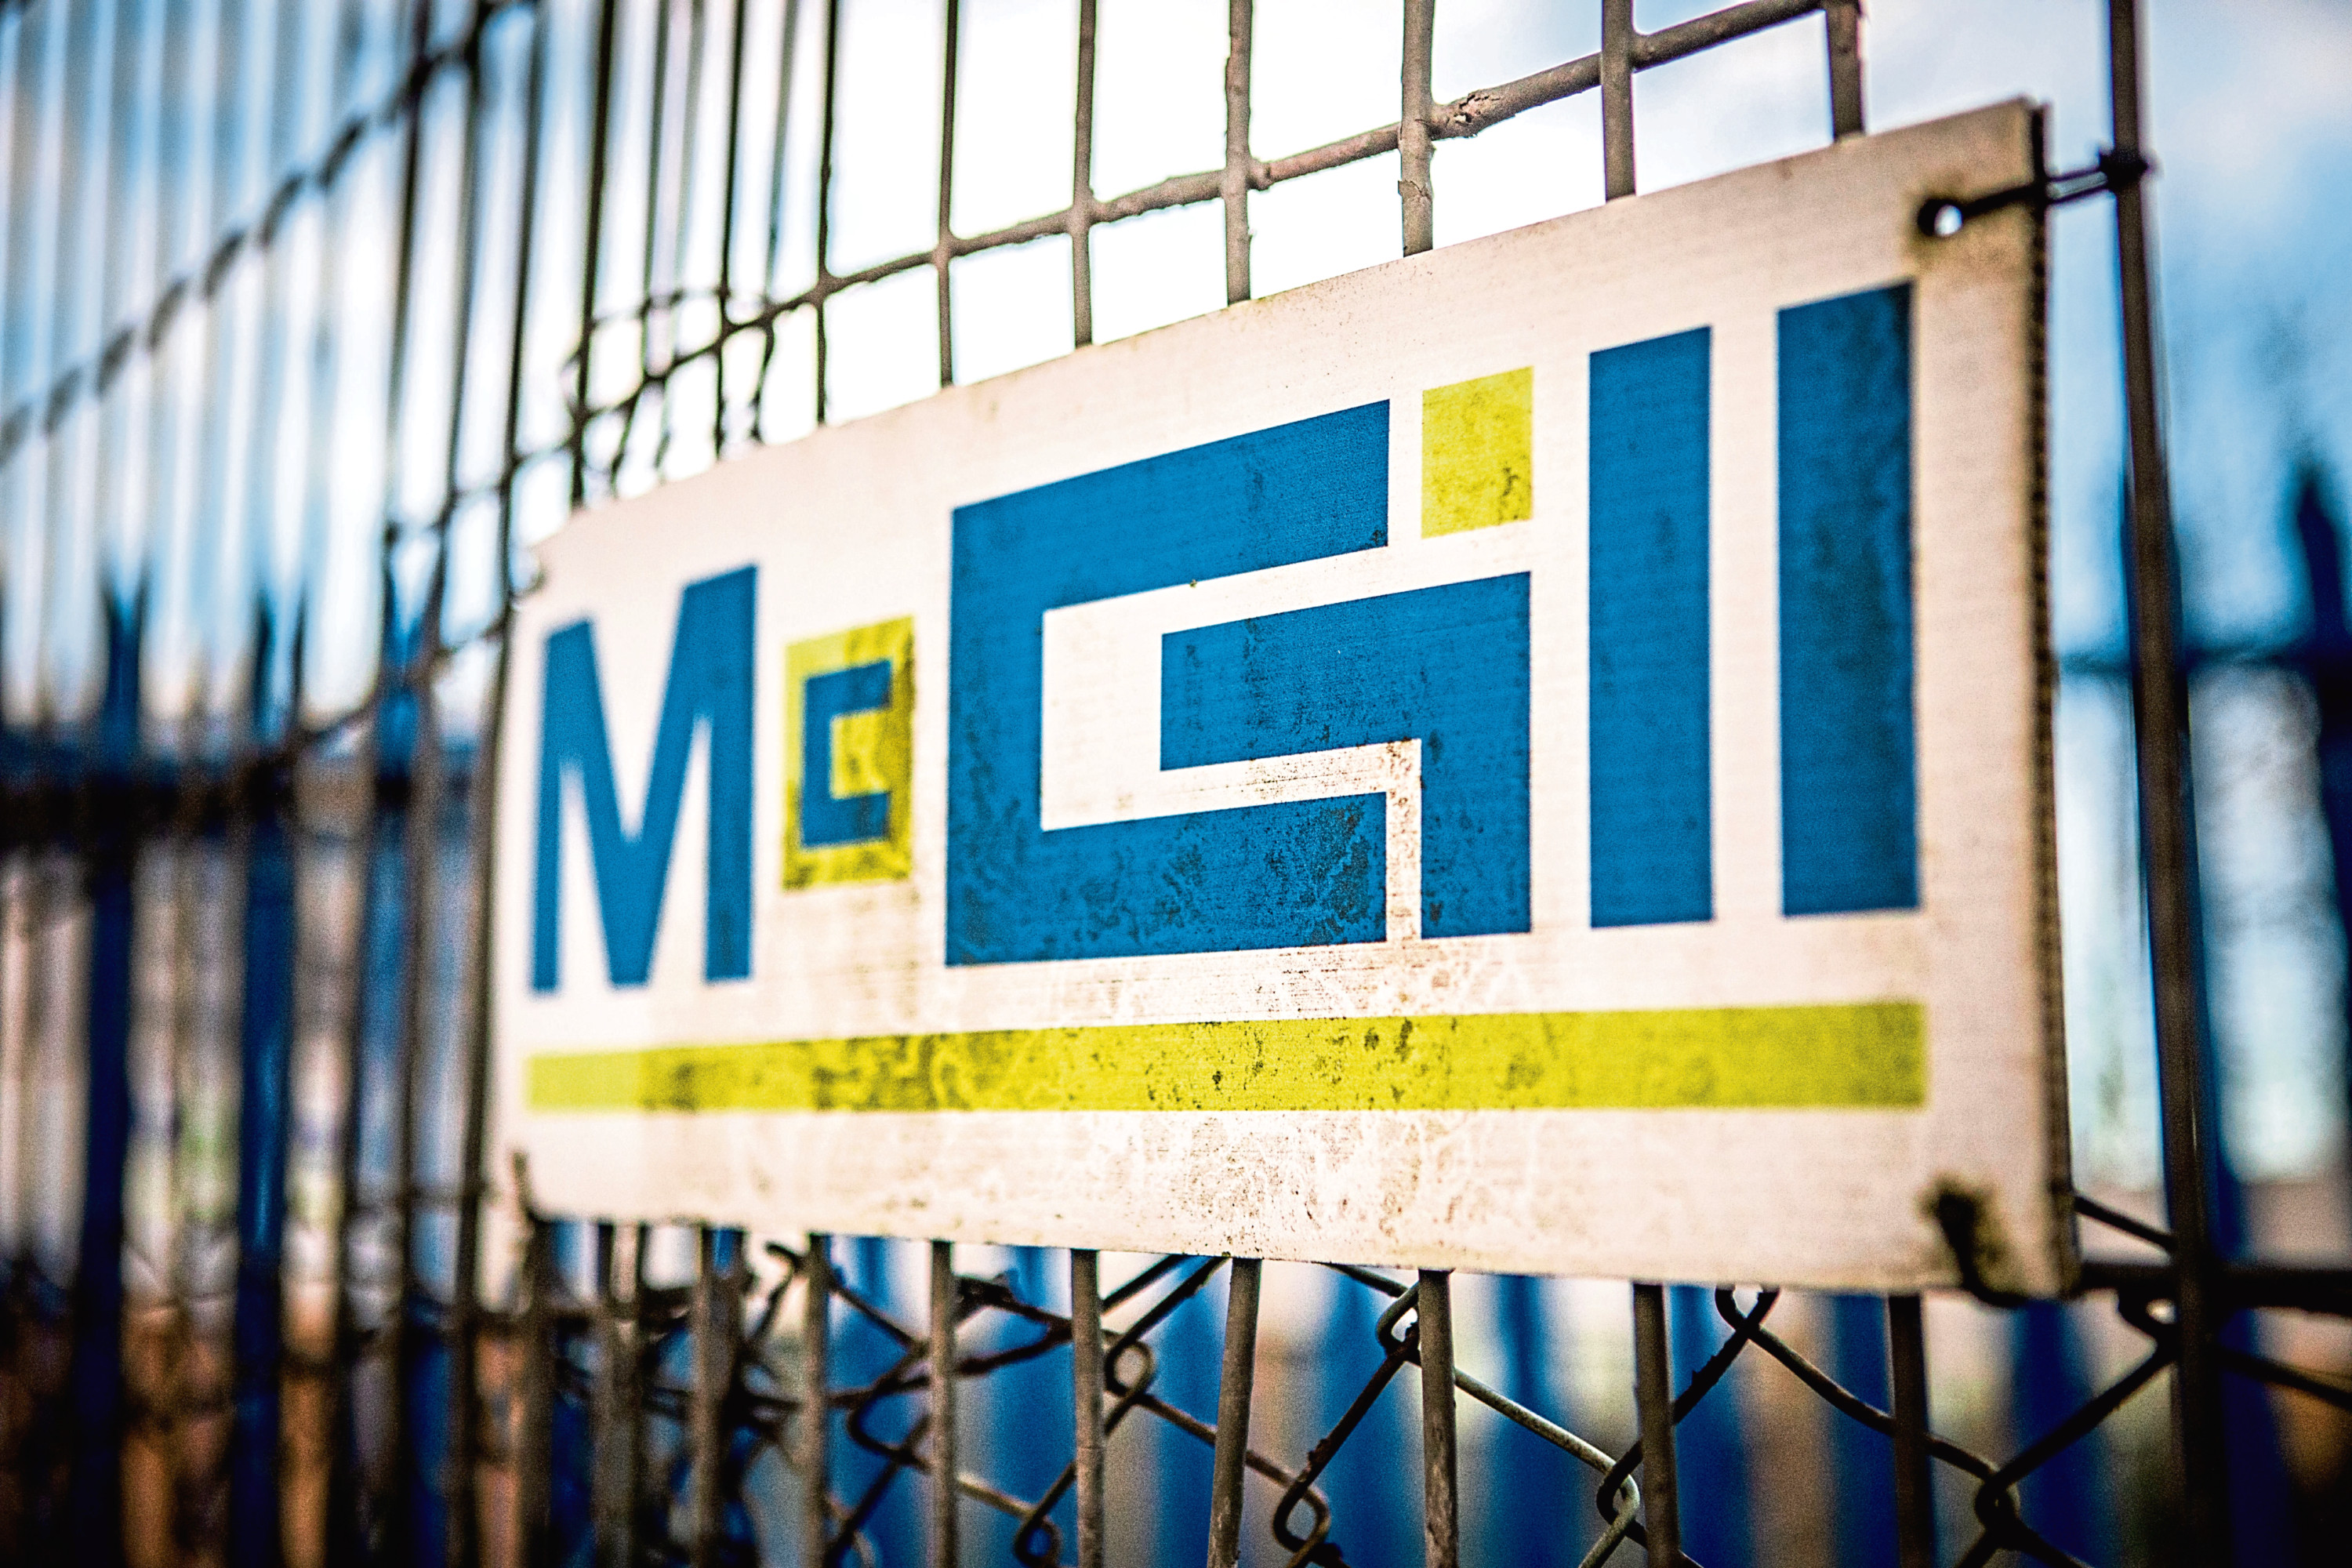 A total of 379 people lost their jobs when McGill closed its doors